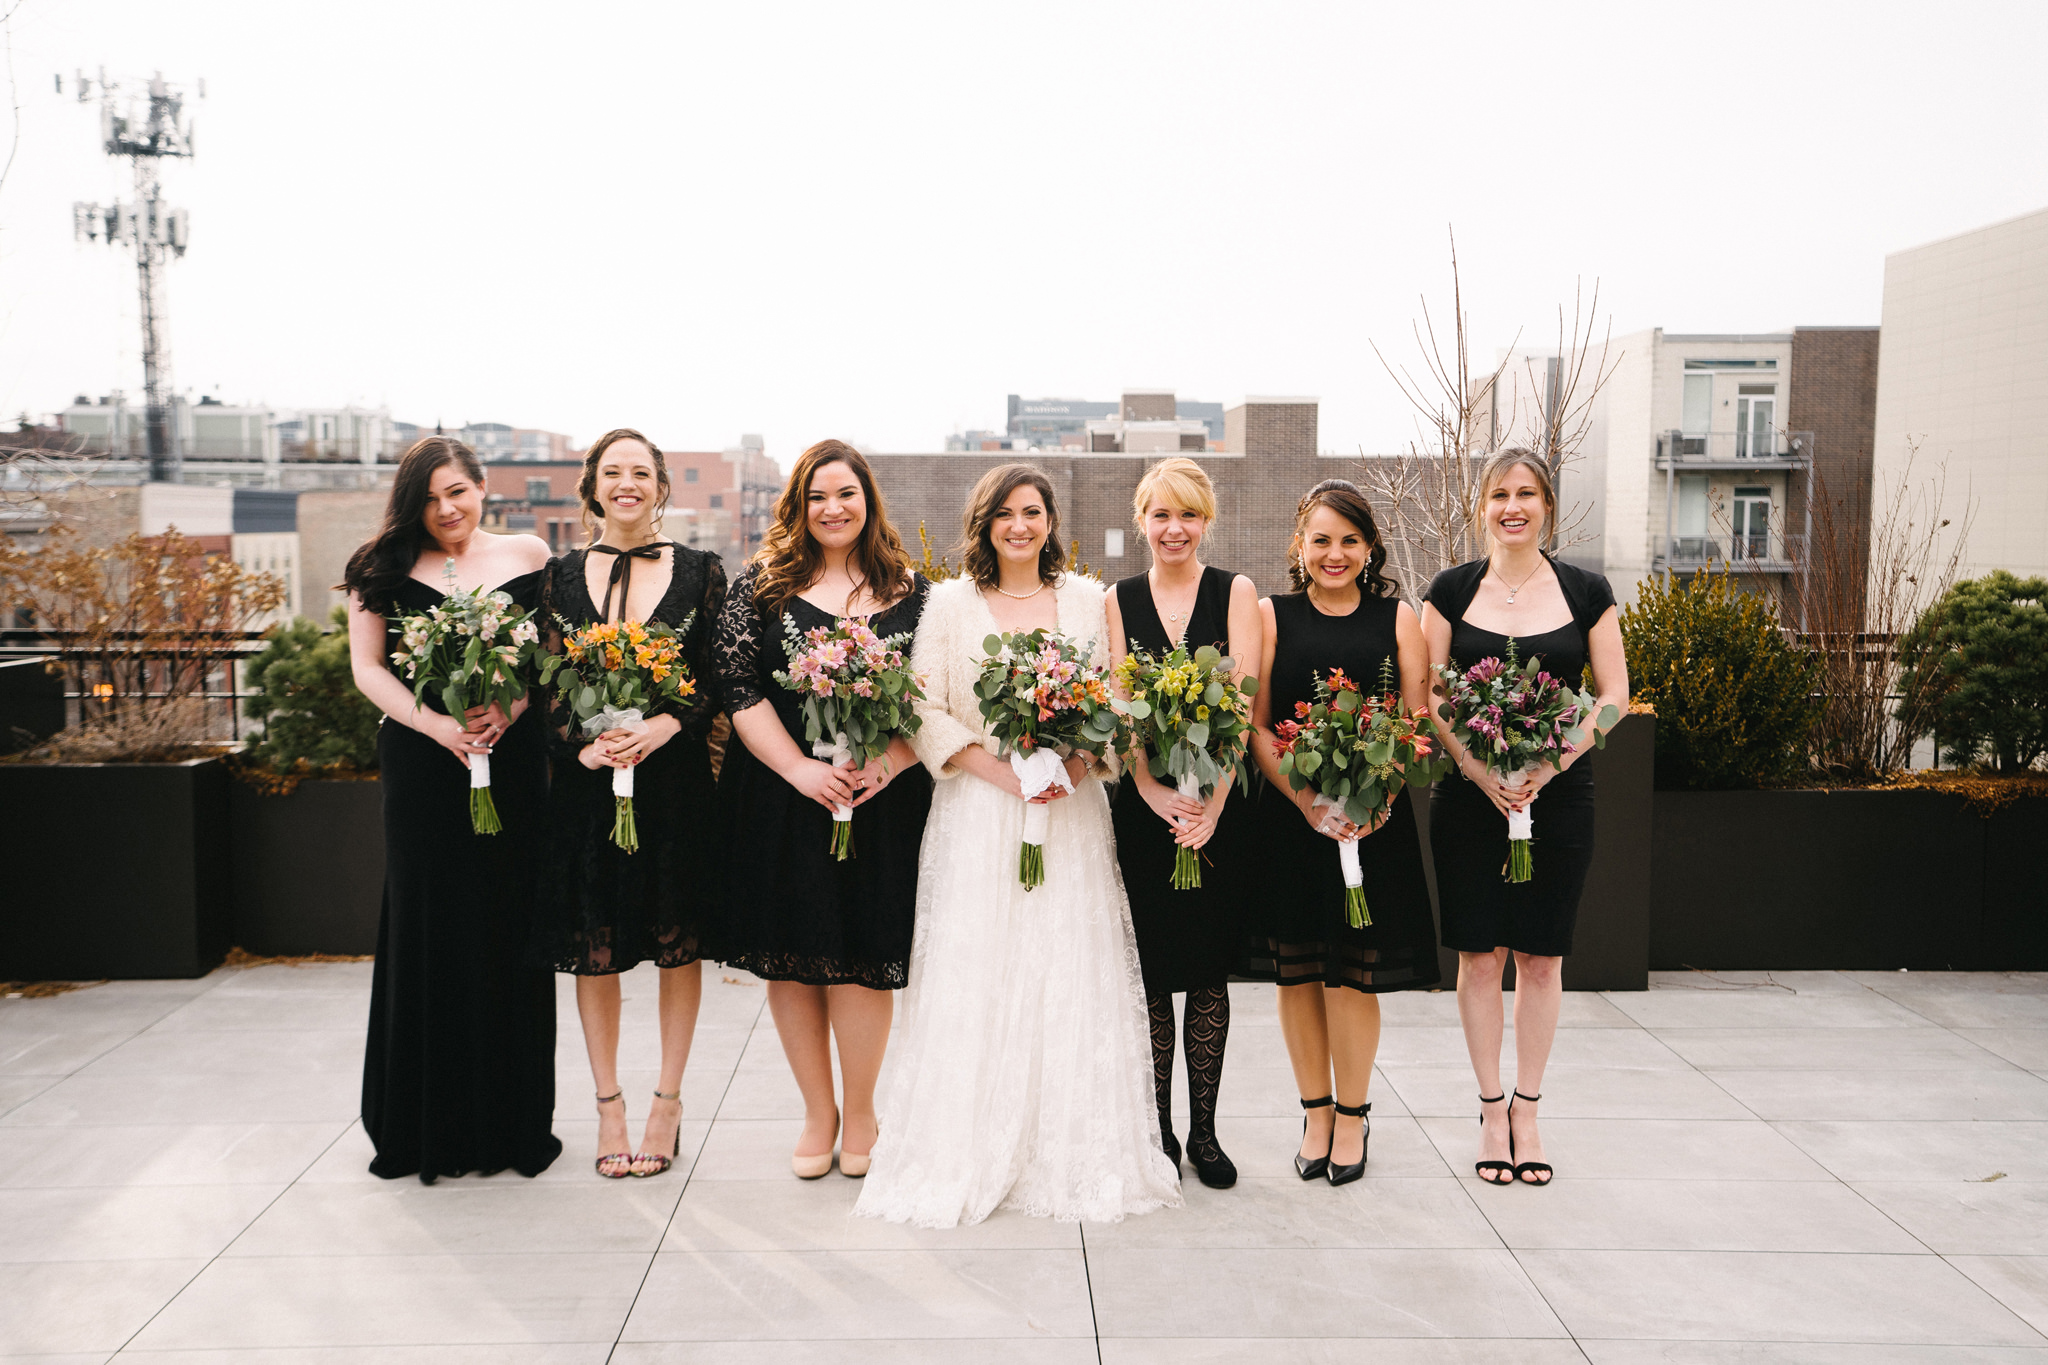 088-rempel-photography-chicago-wedding-inspiration-west-loop-fulton-market-caitlin-max-loft-lucia-venue-lindsey-marino-city-bbq-dana-hotel-and-spa.jpg